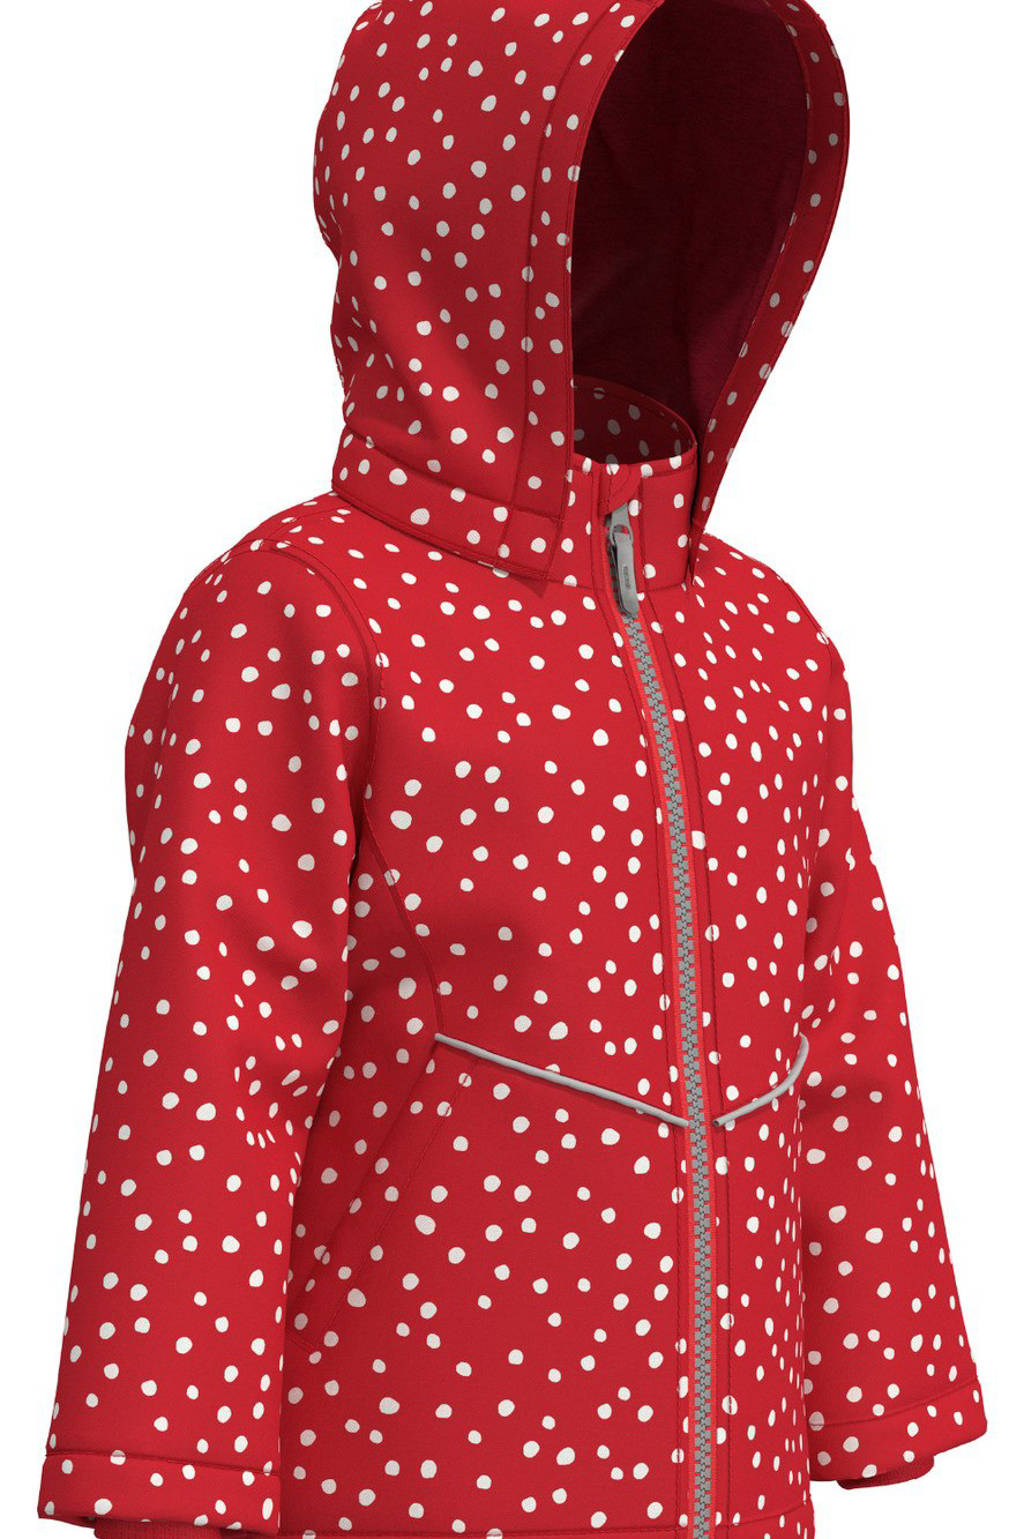 NAME IT MINI jas Maxi met stippen rood/wit, Rood/wit